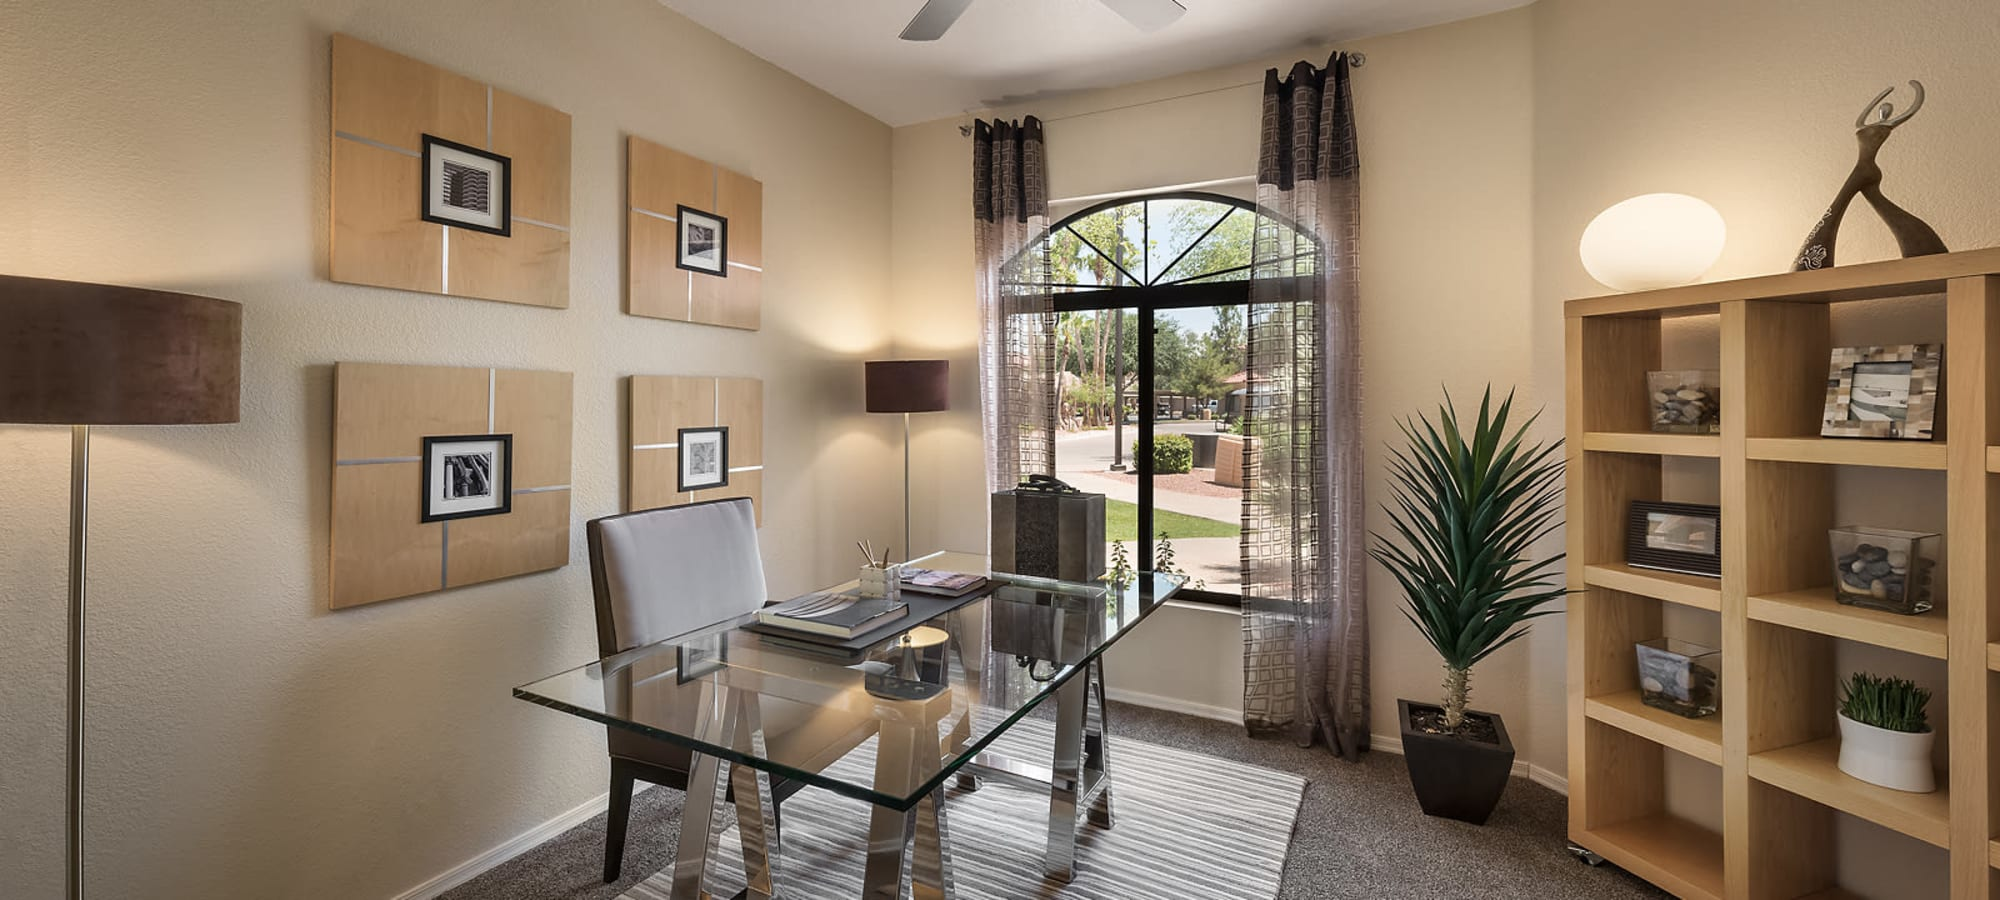 Large guest bedroom or office at San Cervantes in Chandler, Arizona